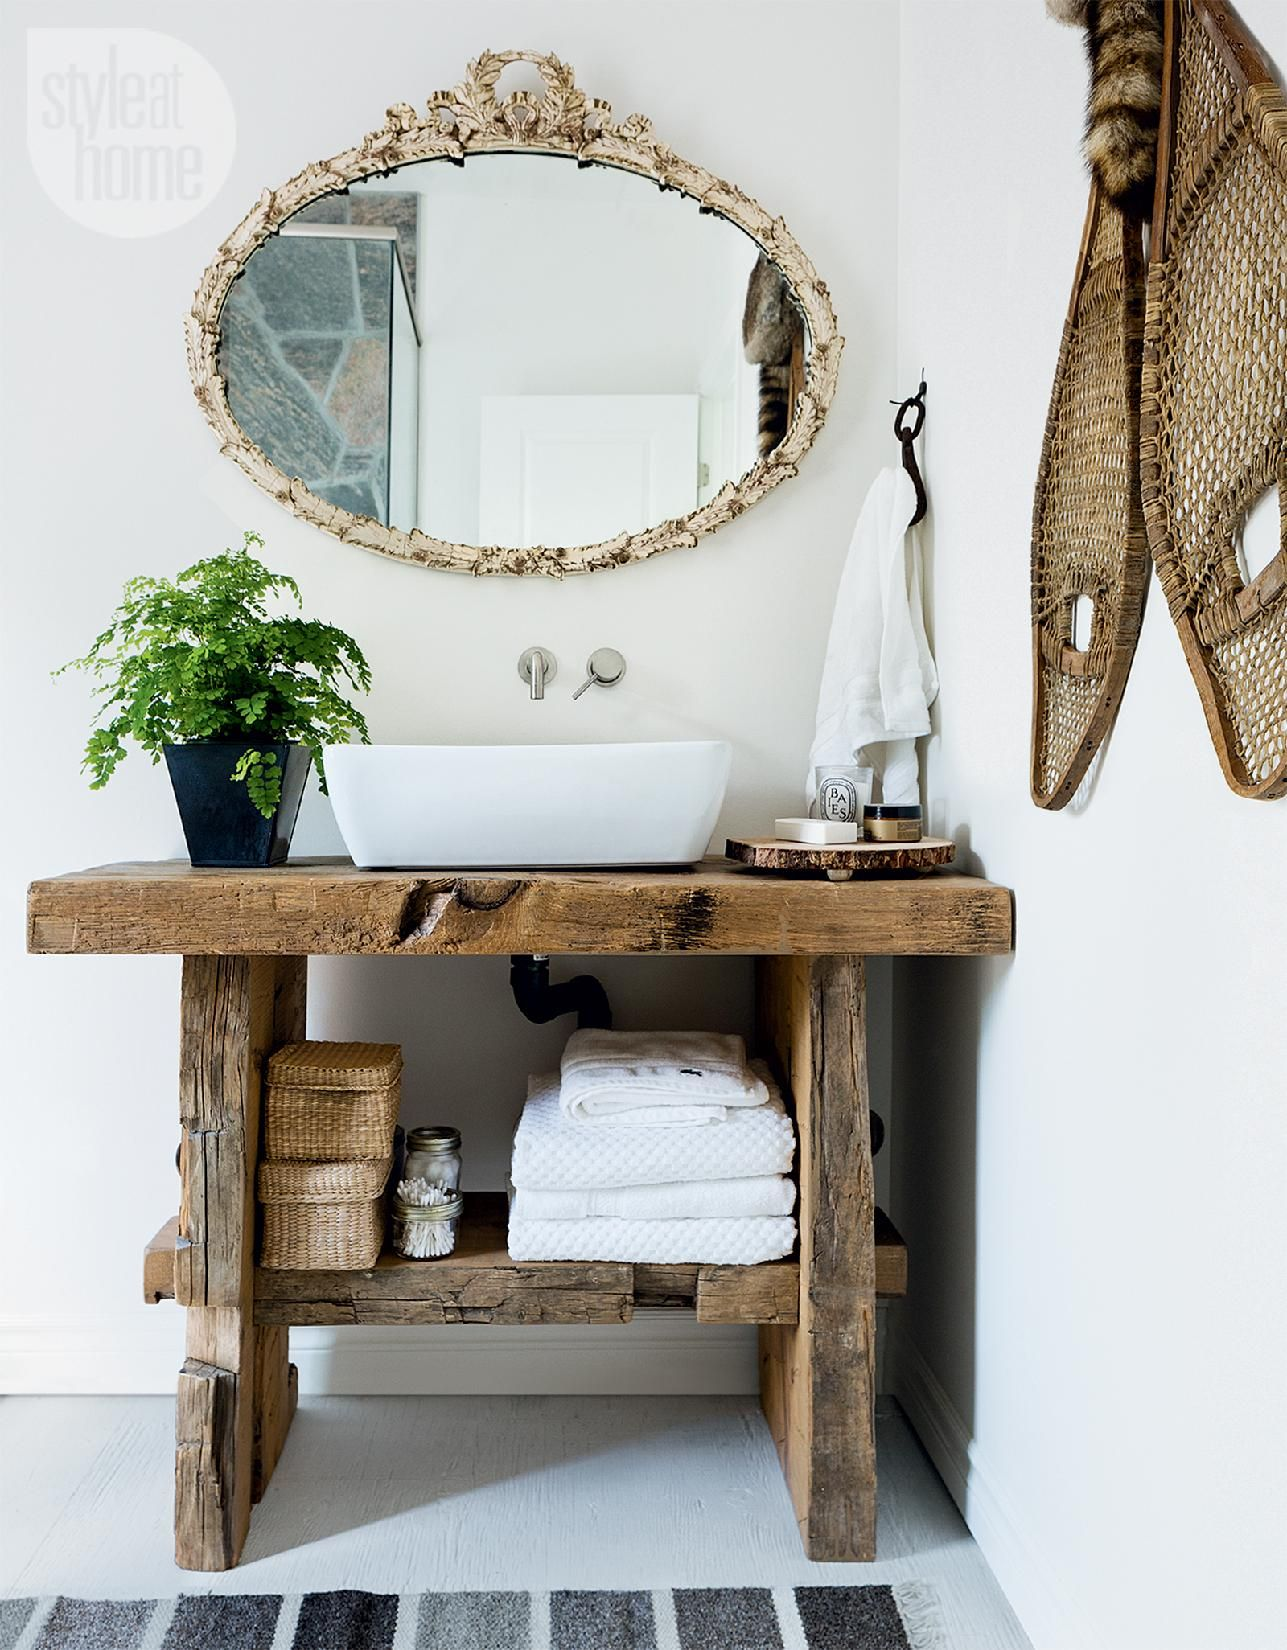 House tour: Colourful eclectic cottage | Cottage style bathrooms ...